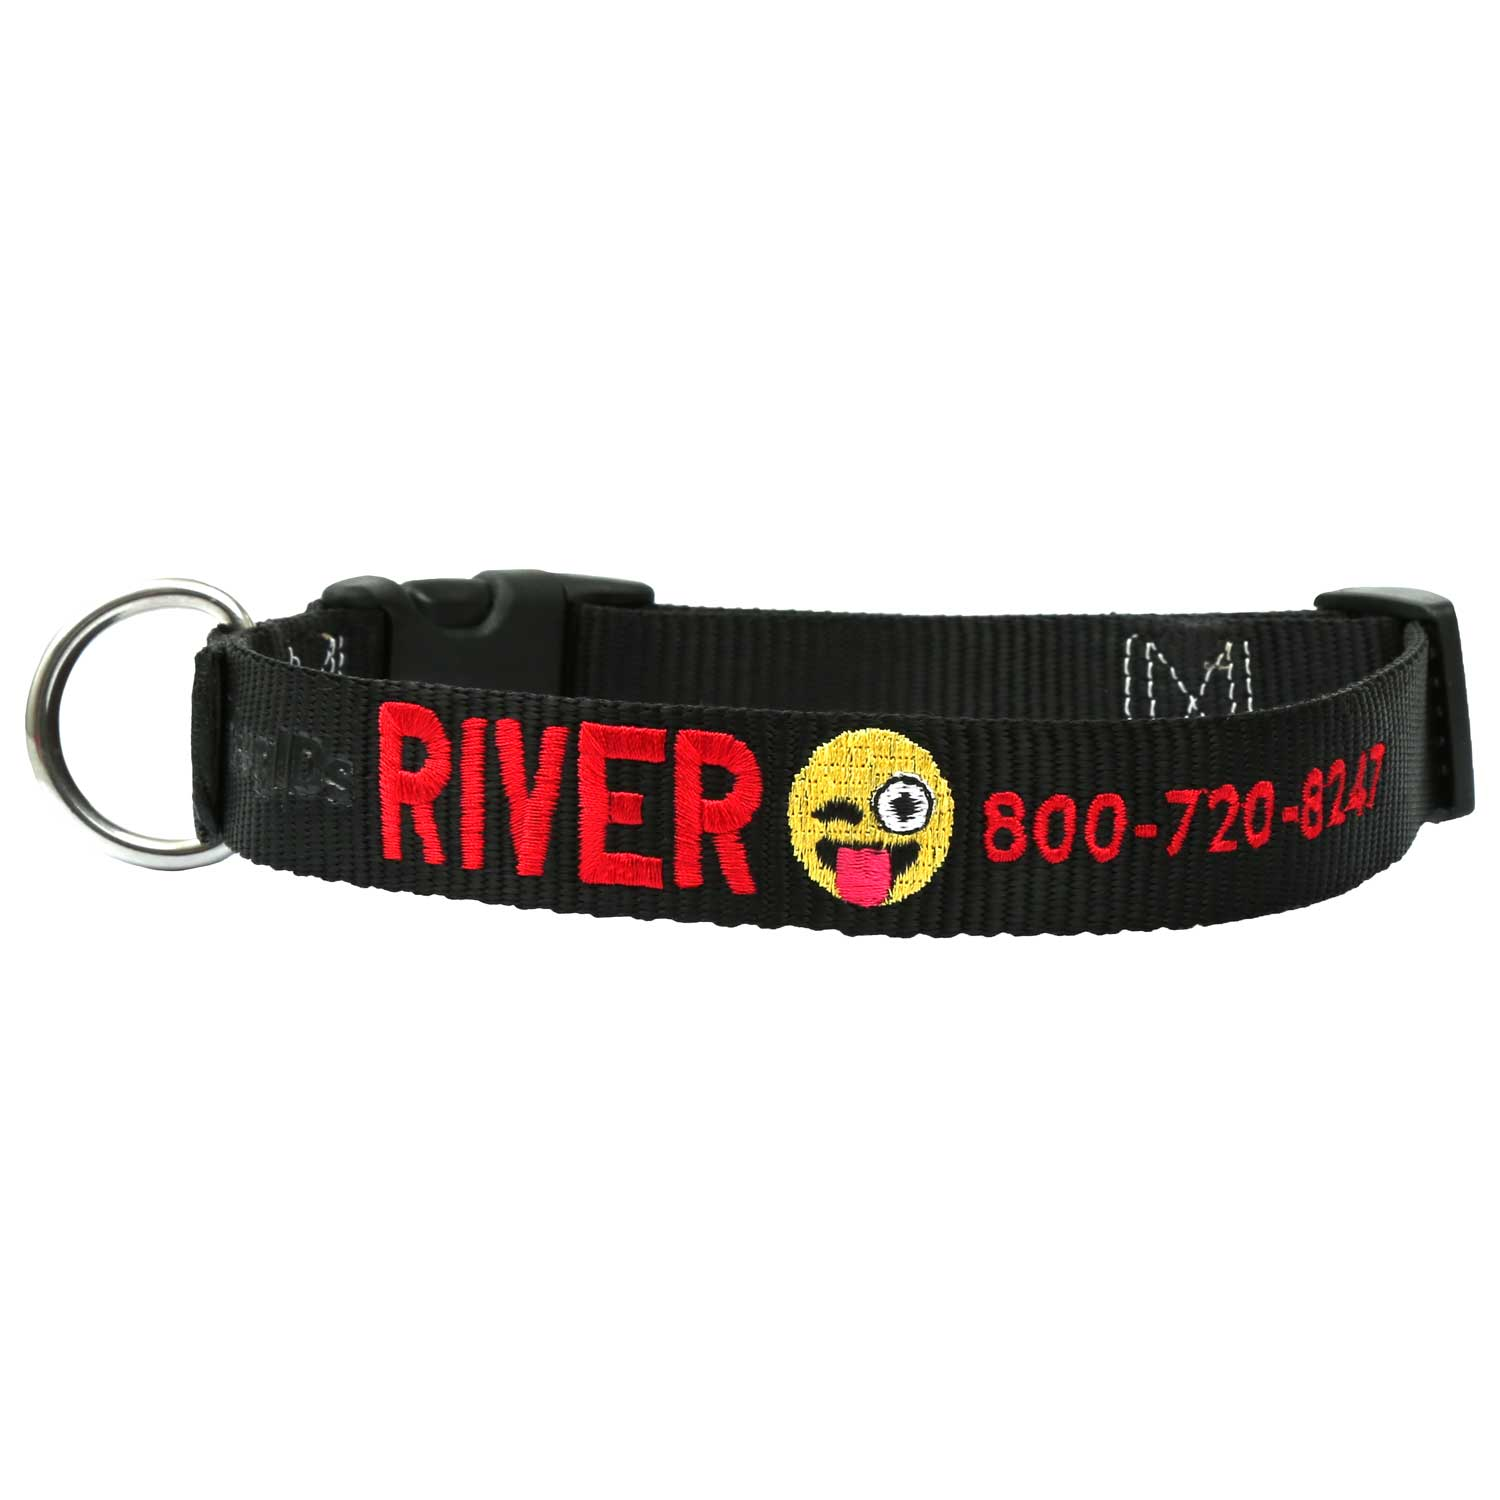 Custom Embroidered Emoji Dog Collar - Black Collar, Red Thread, Winking Face with Tongue Emoji